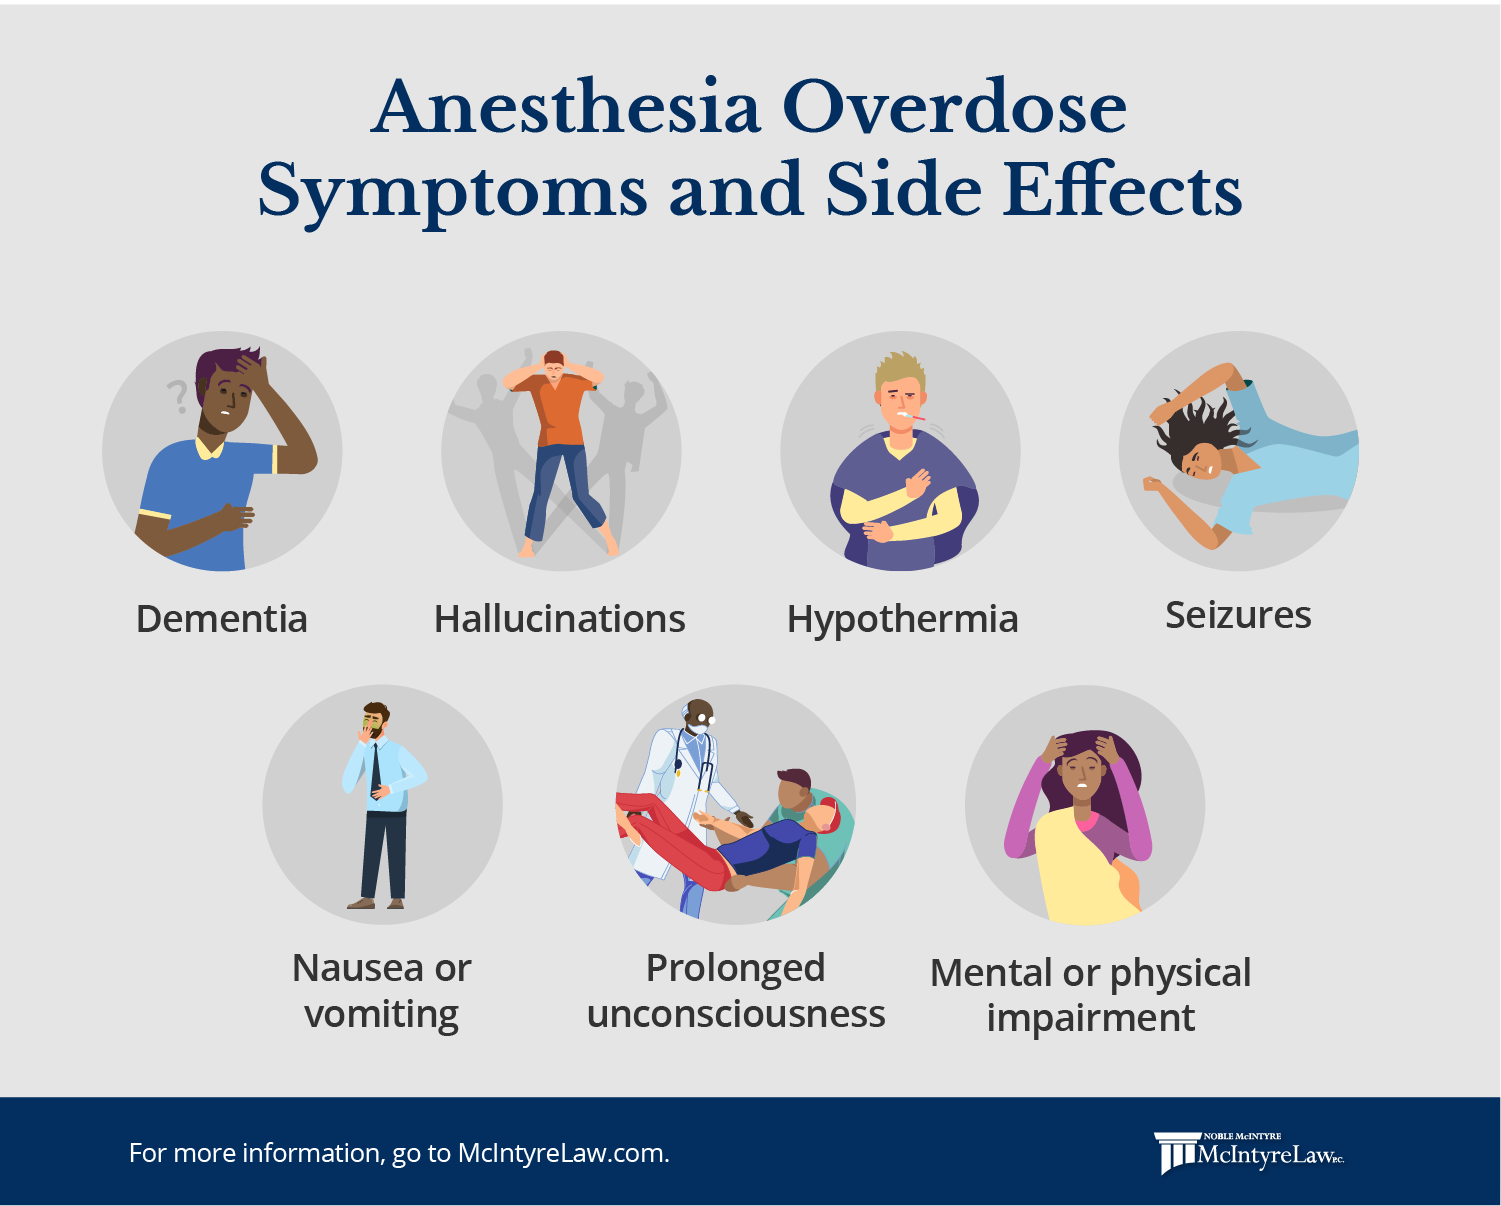 anesthesia overdose symptoms side effect